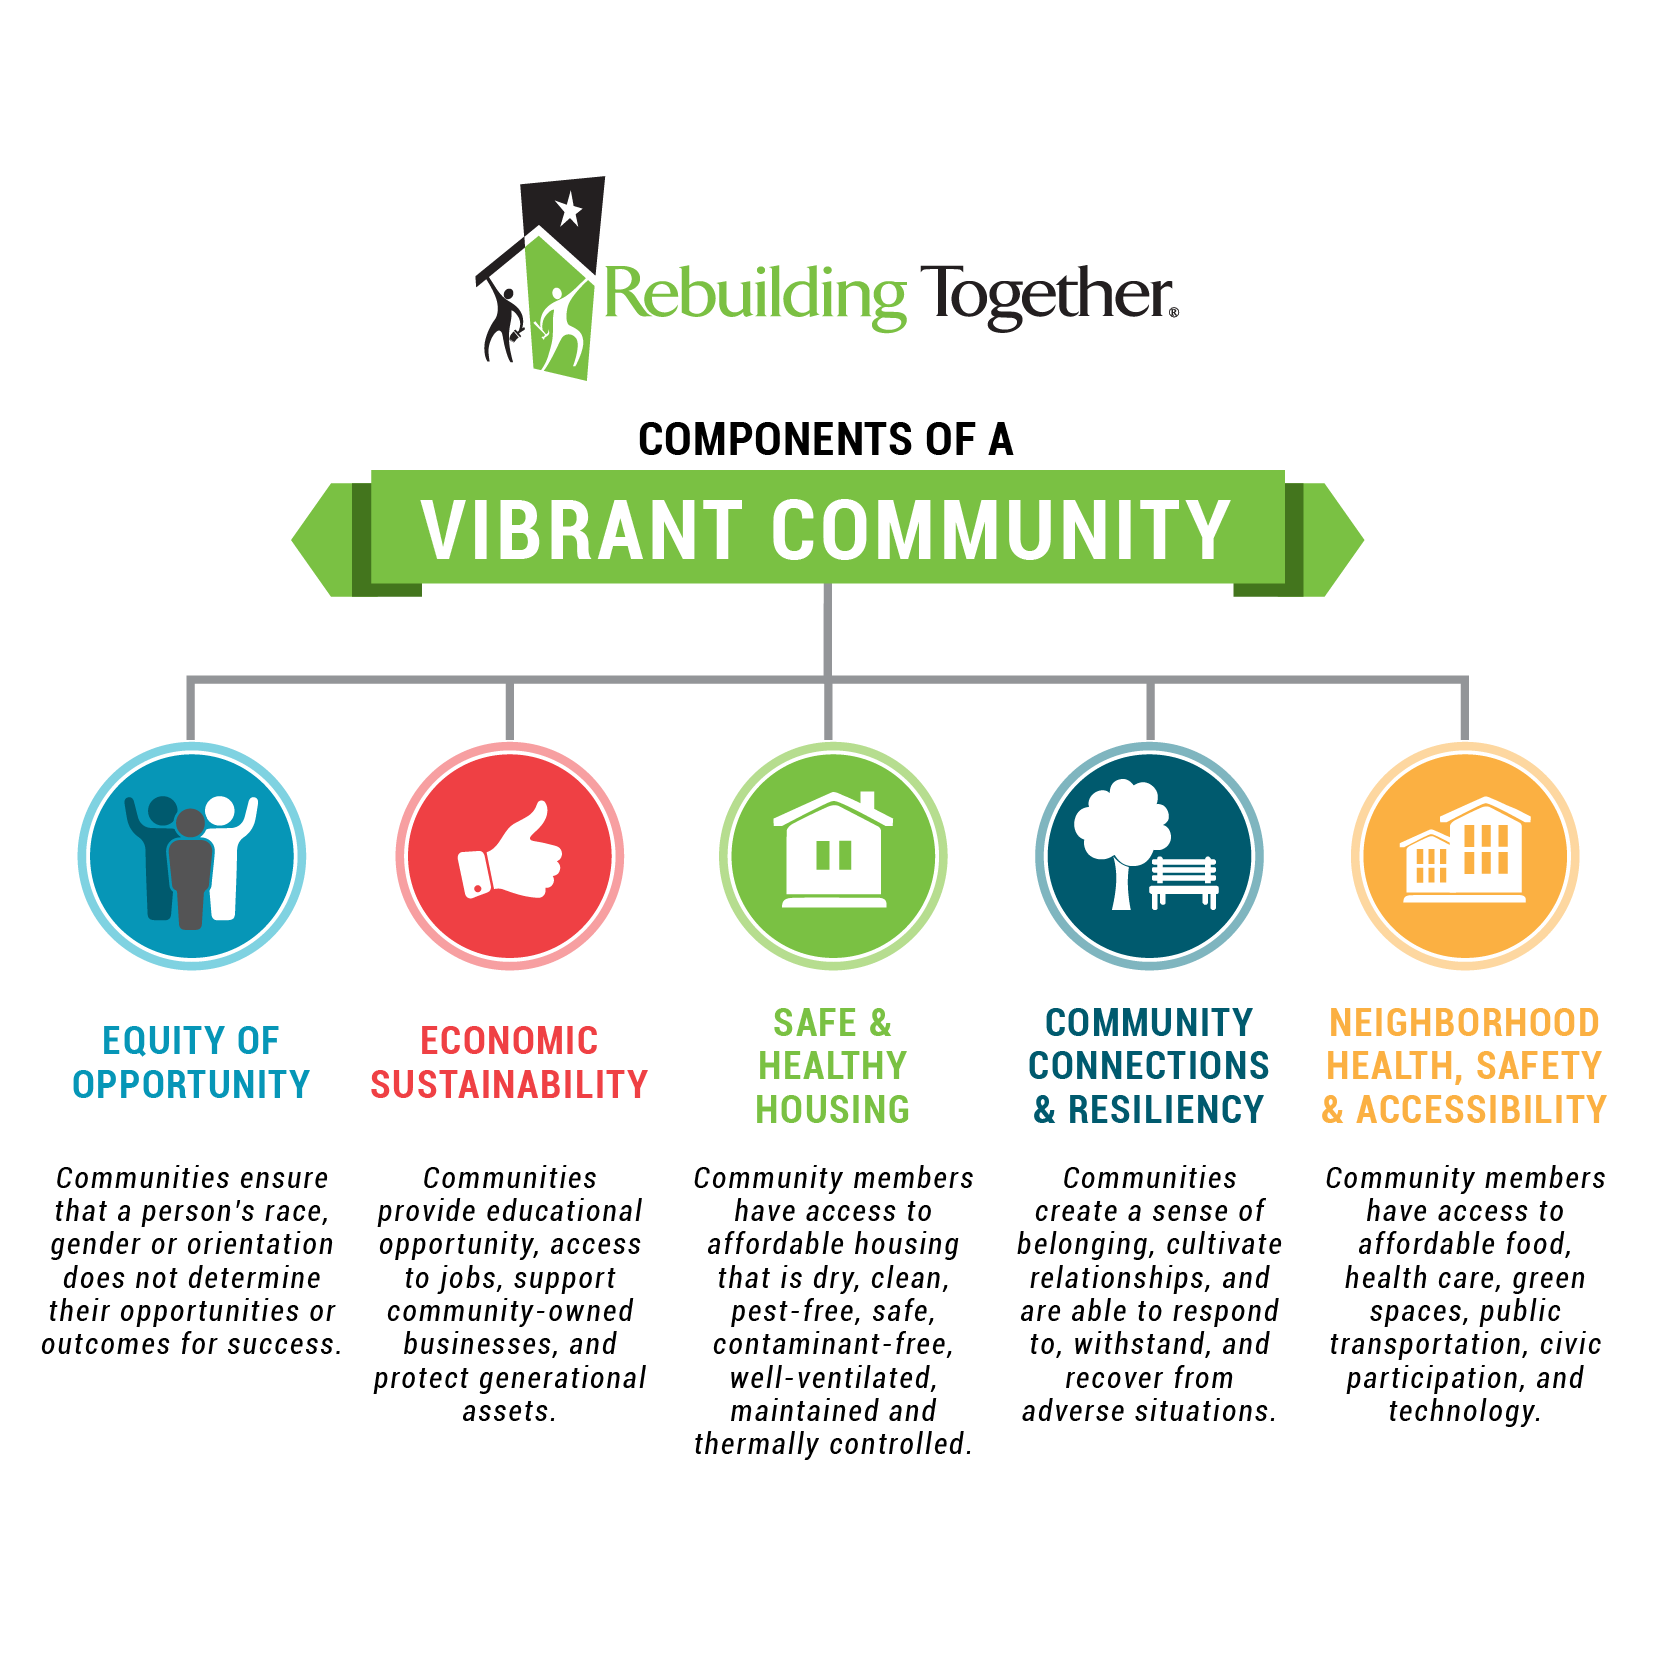 Components of a Vibrant Community - Equity of Opportunity, Economic Sustainability, Safe and Healthy Housing, Community Connections and Resiliency, Neighborhood Health, Safety and Accessibility